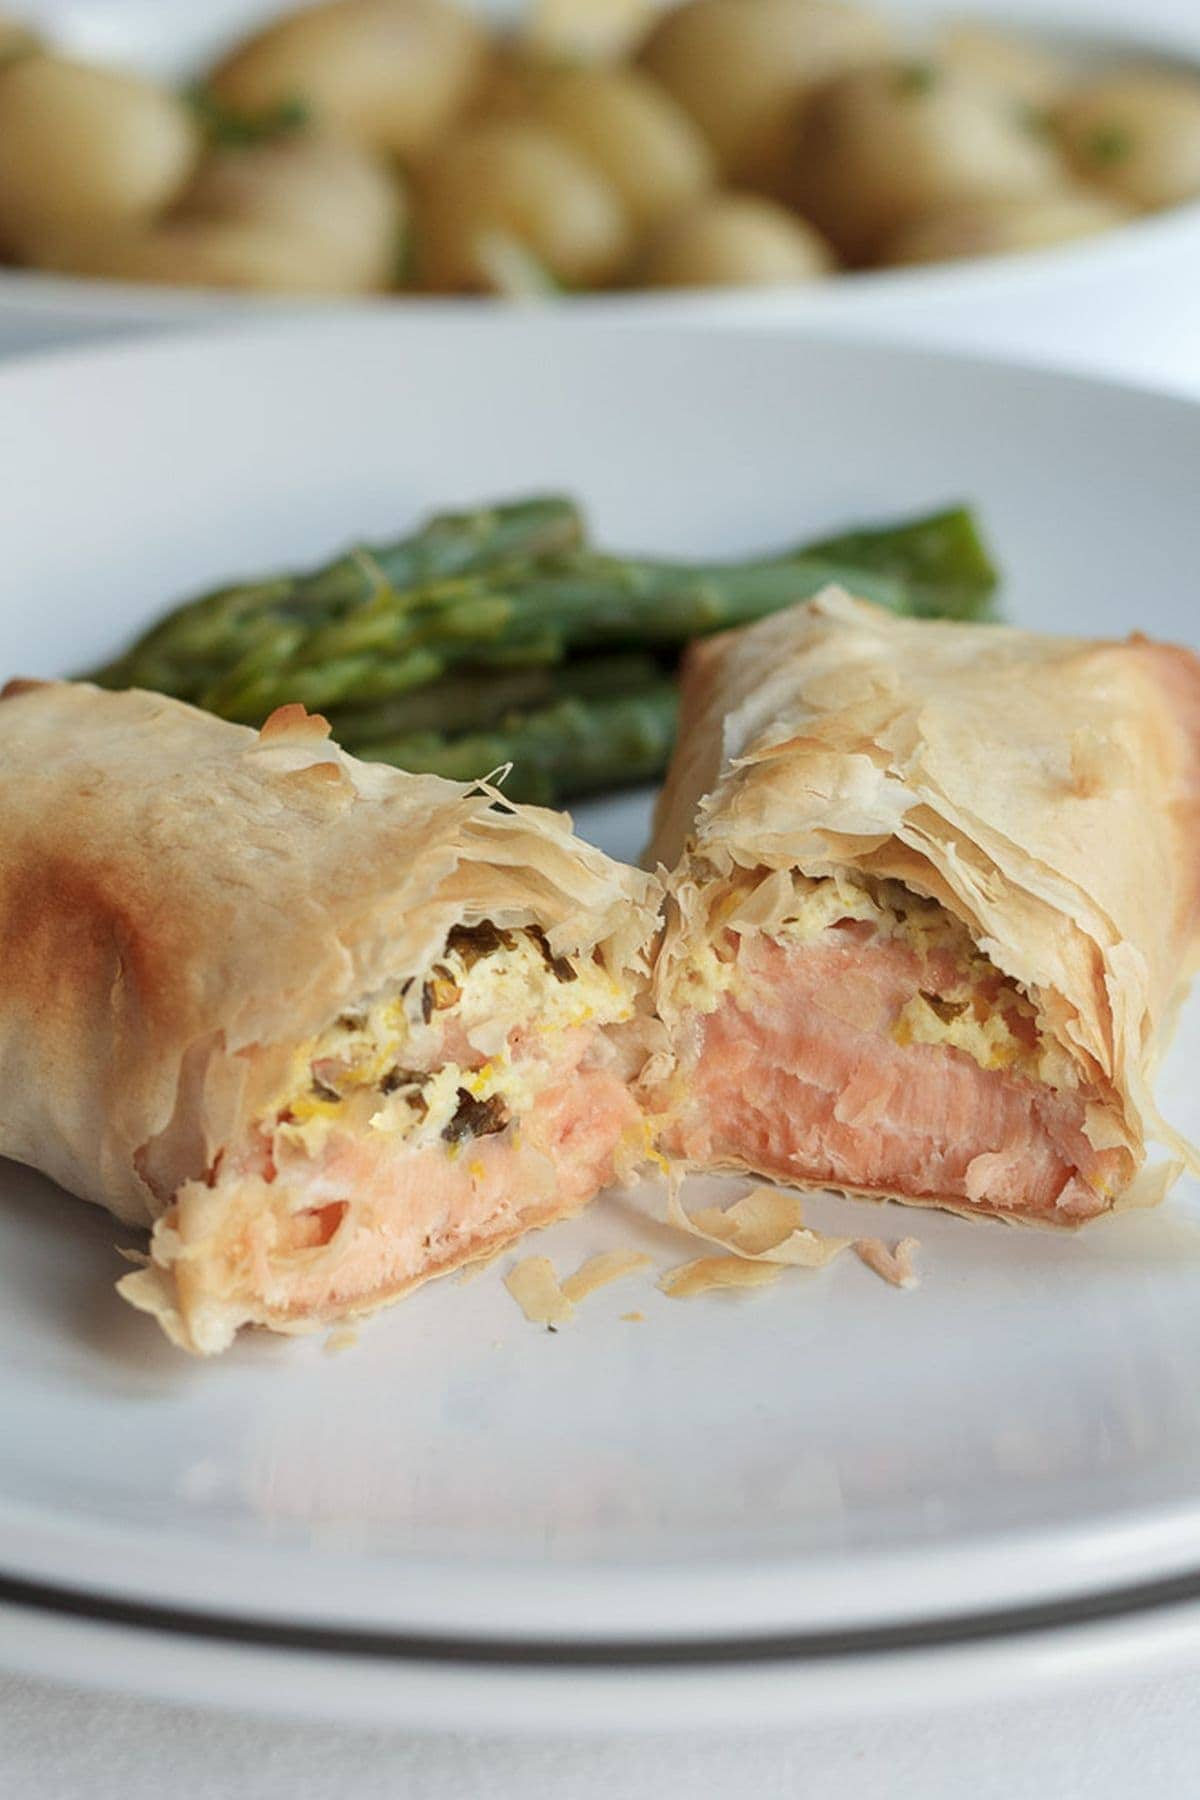 A salmon filo parcel cut in half on a plate with asparagus in the background.